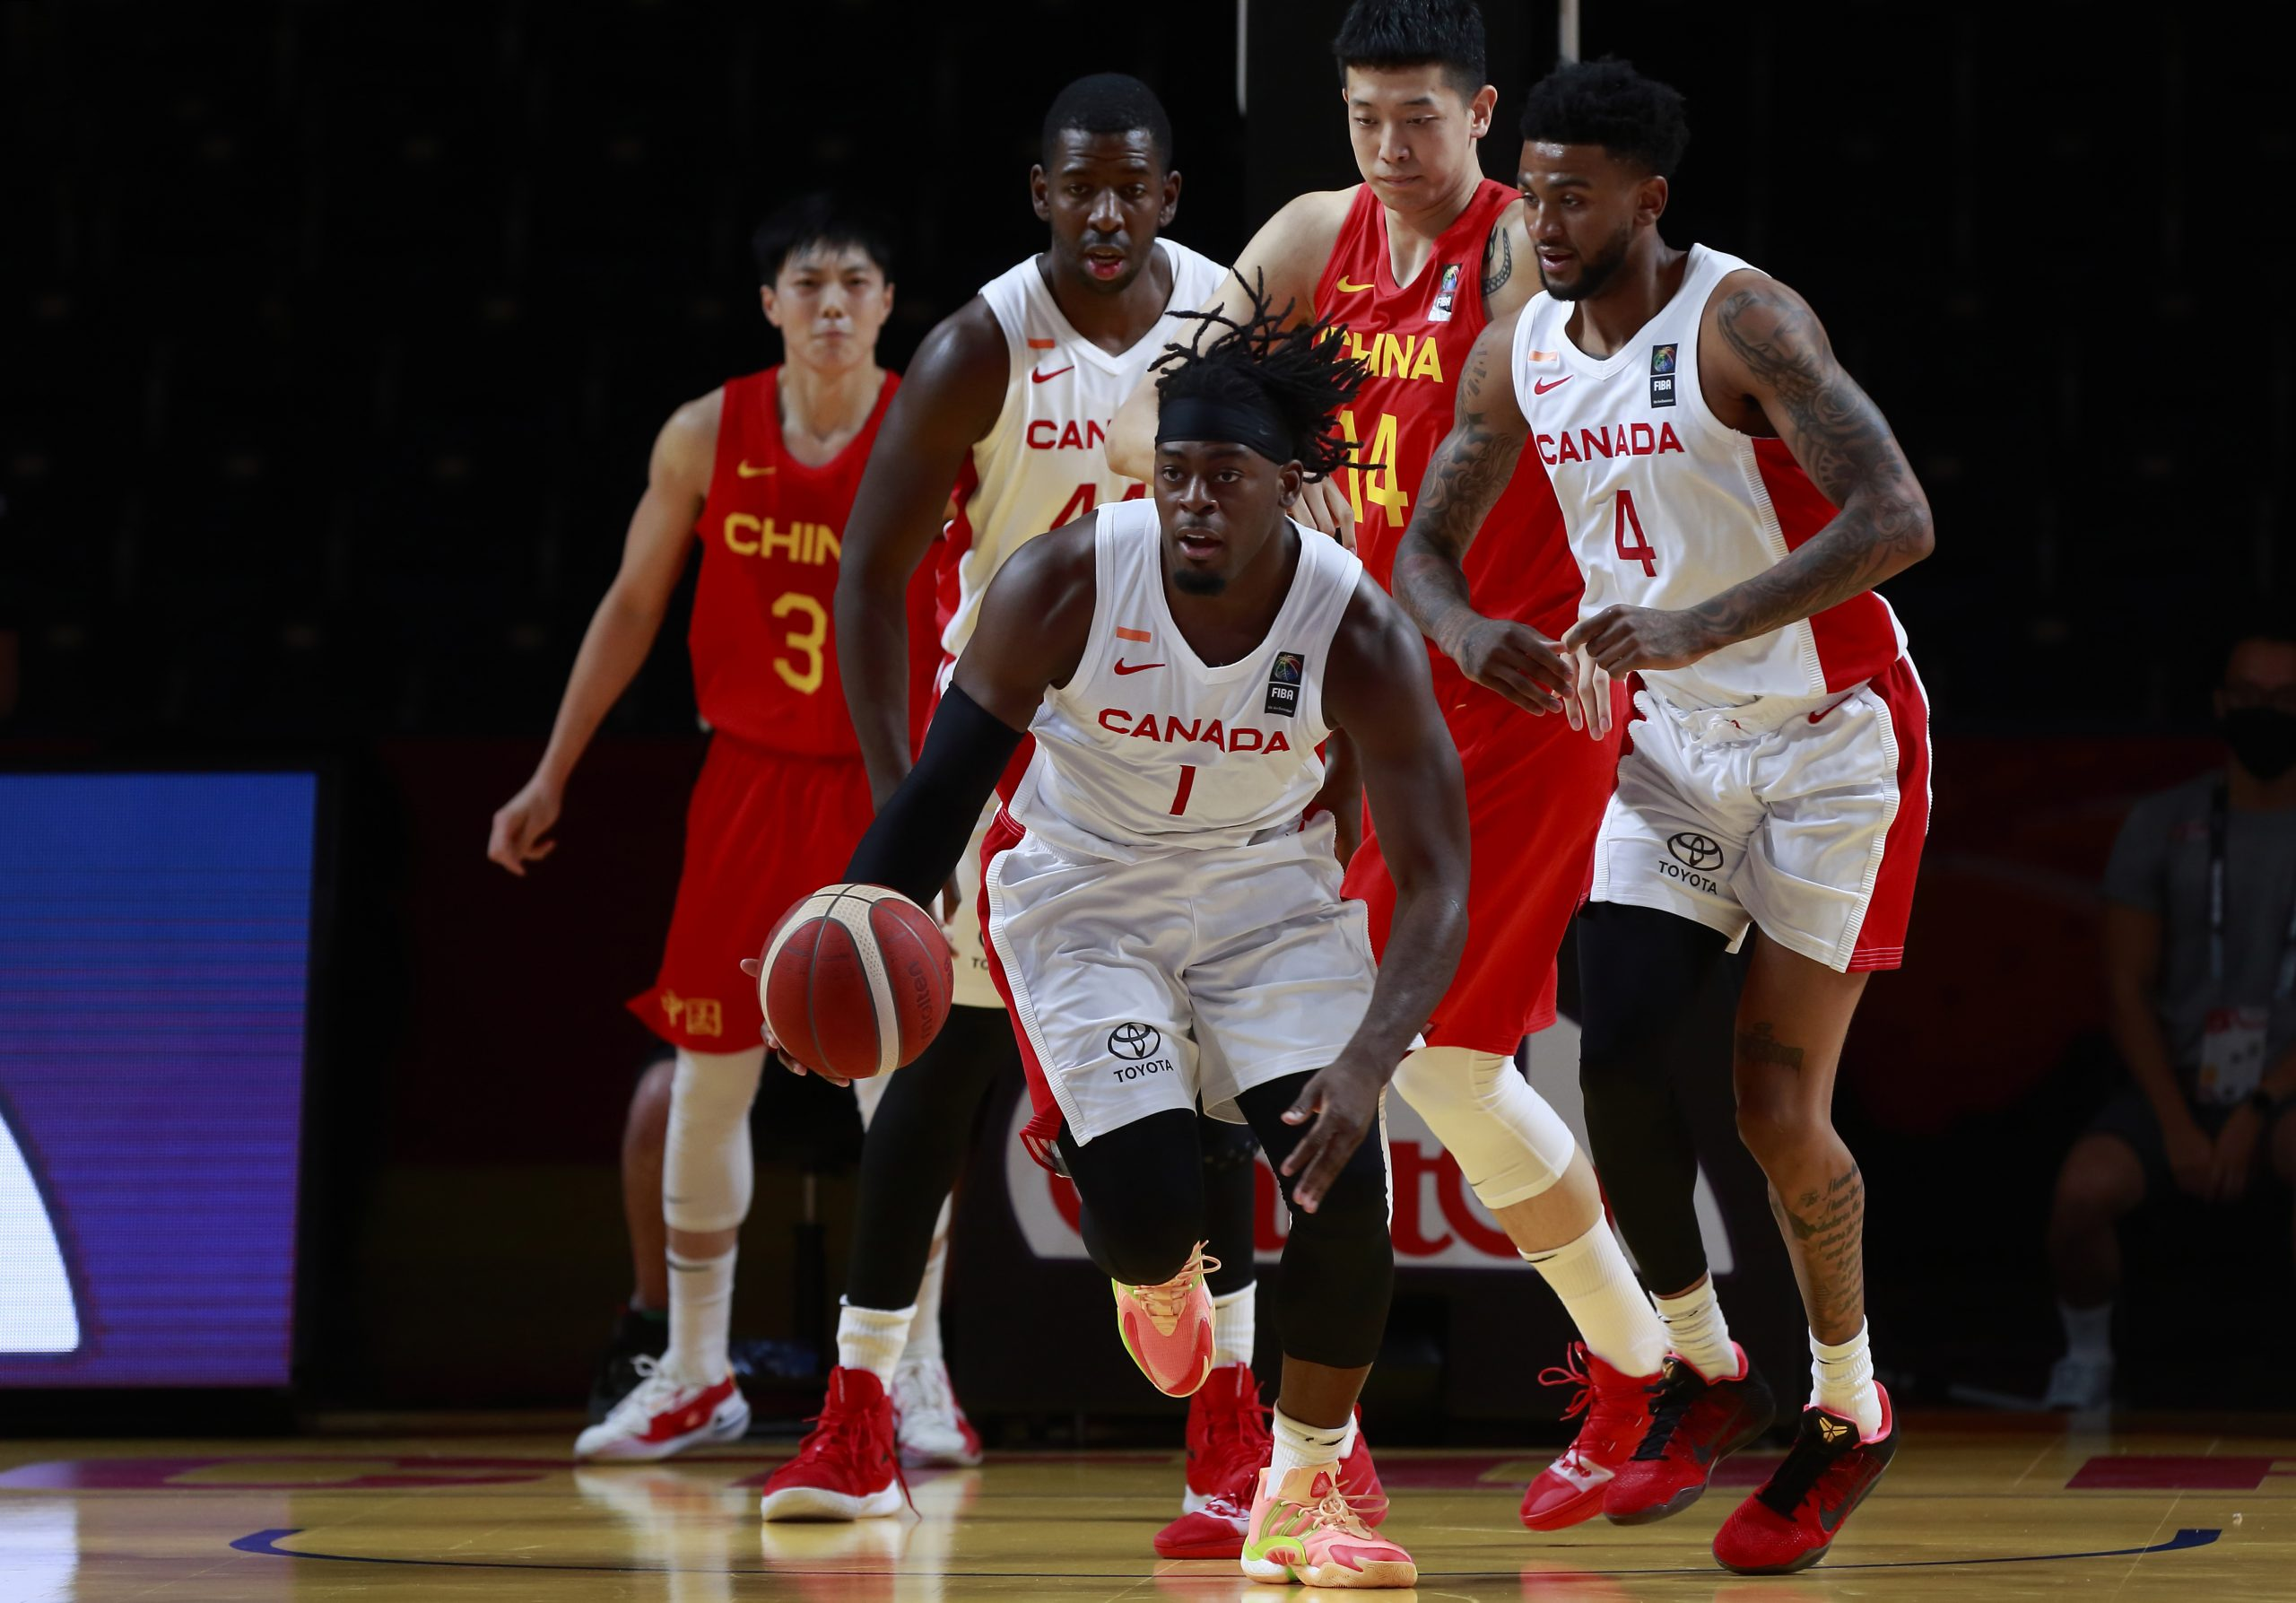 Canada's SMNT books ticket to the FIBA Olympic Qualifying Tournament semis with 109-79 win over China